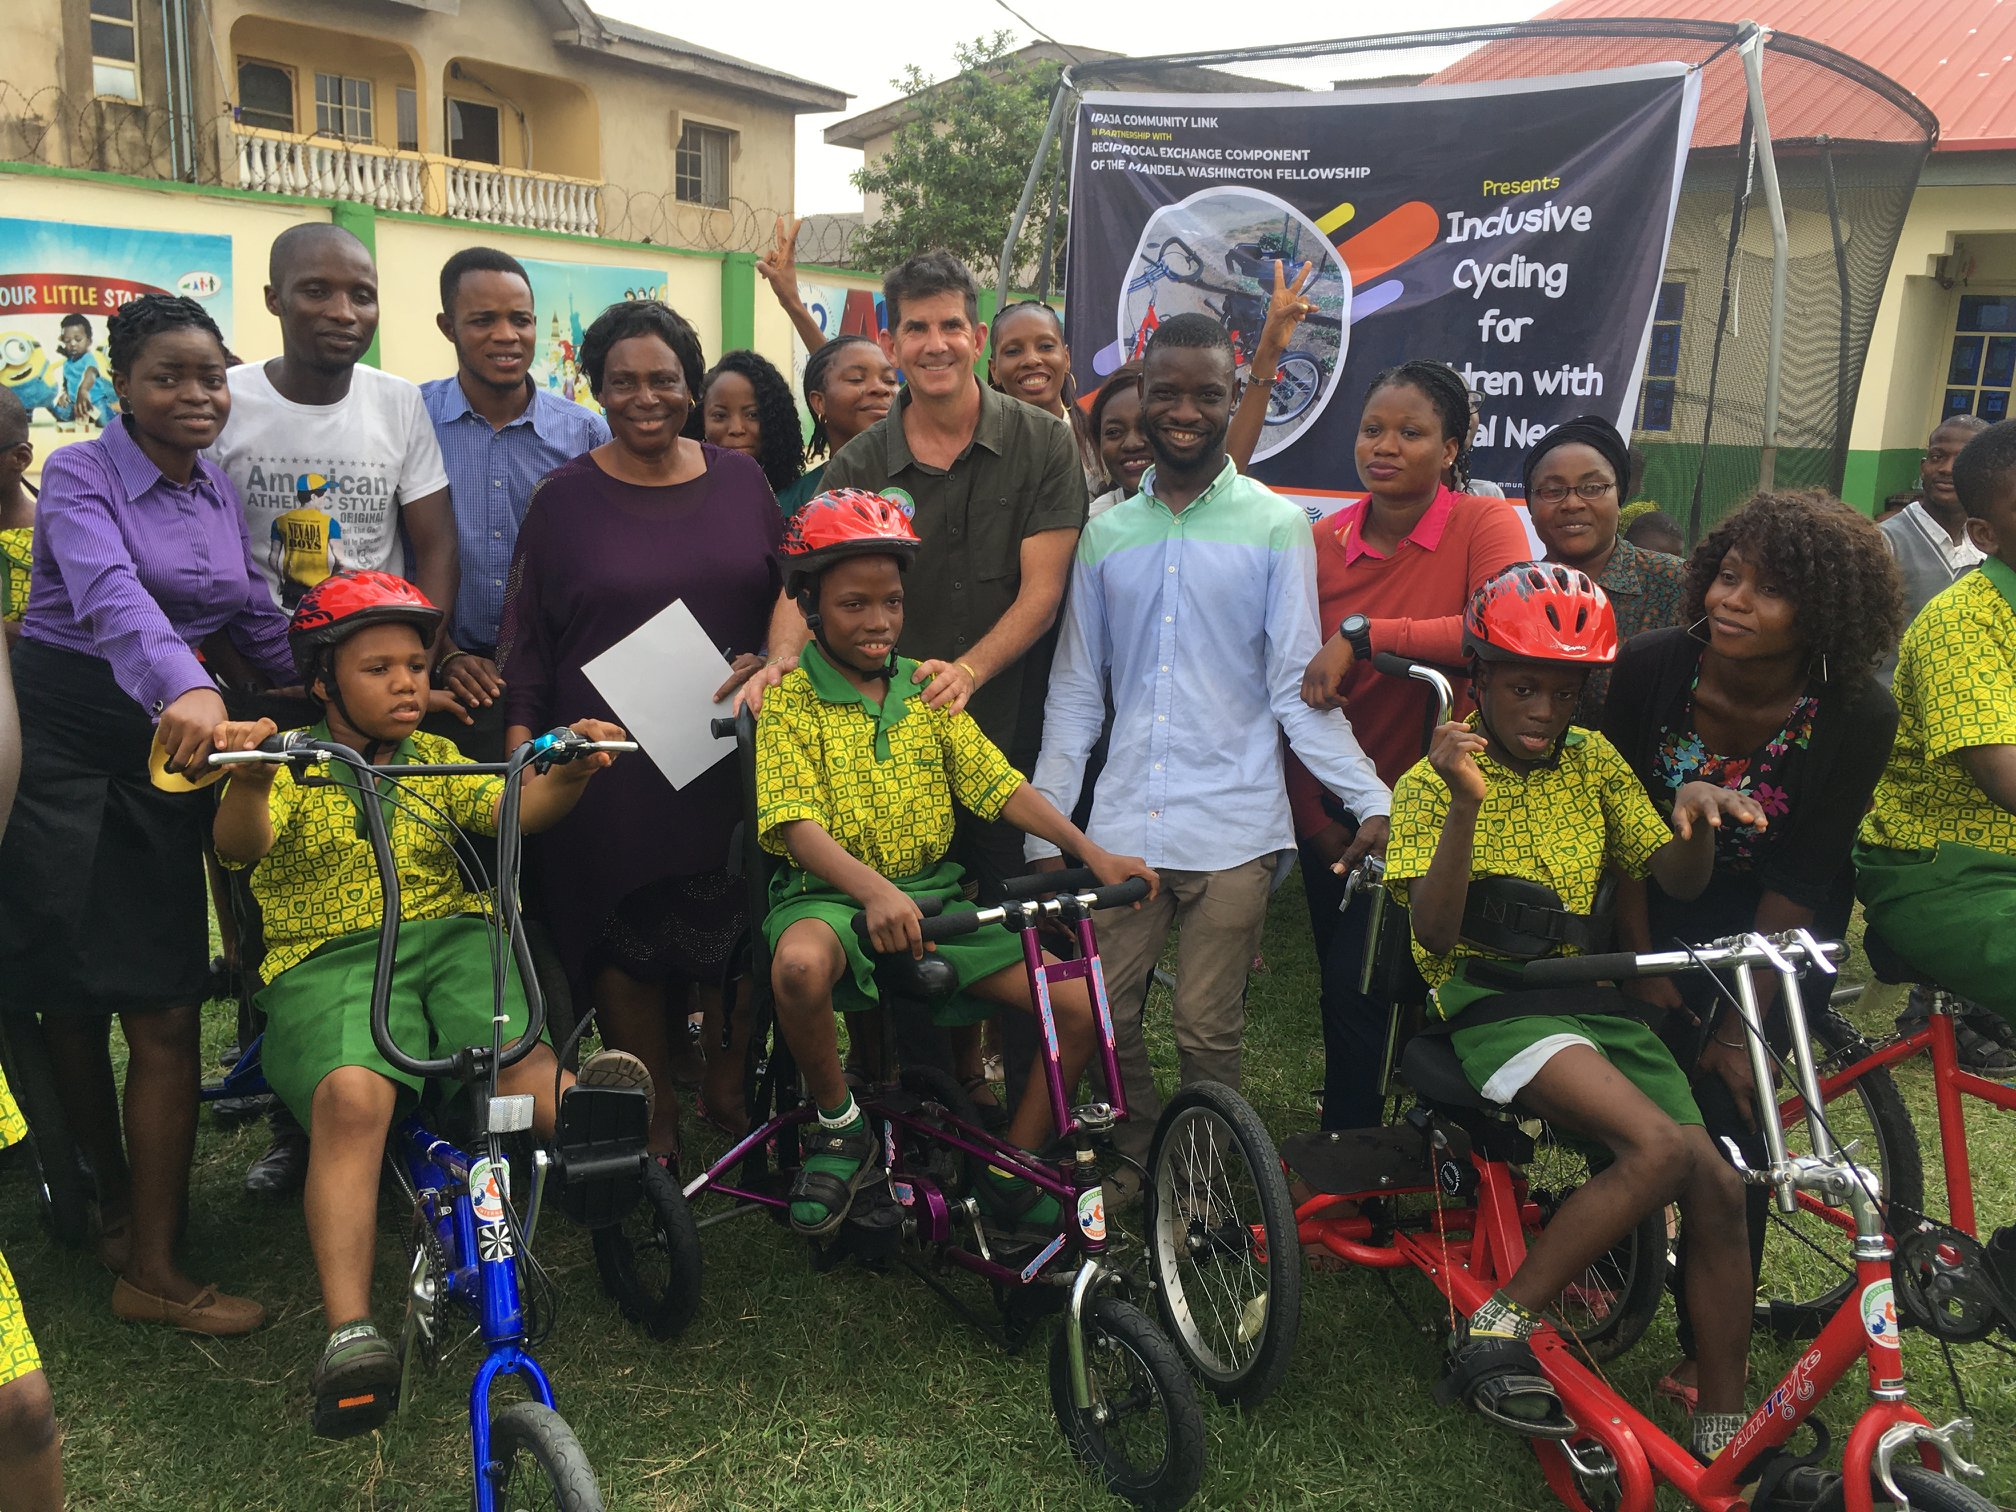 A group of adults stand behind three children on adaptive bicycles. An Inclusive Cycling banner is behind them.